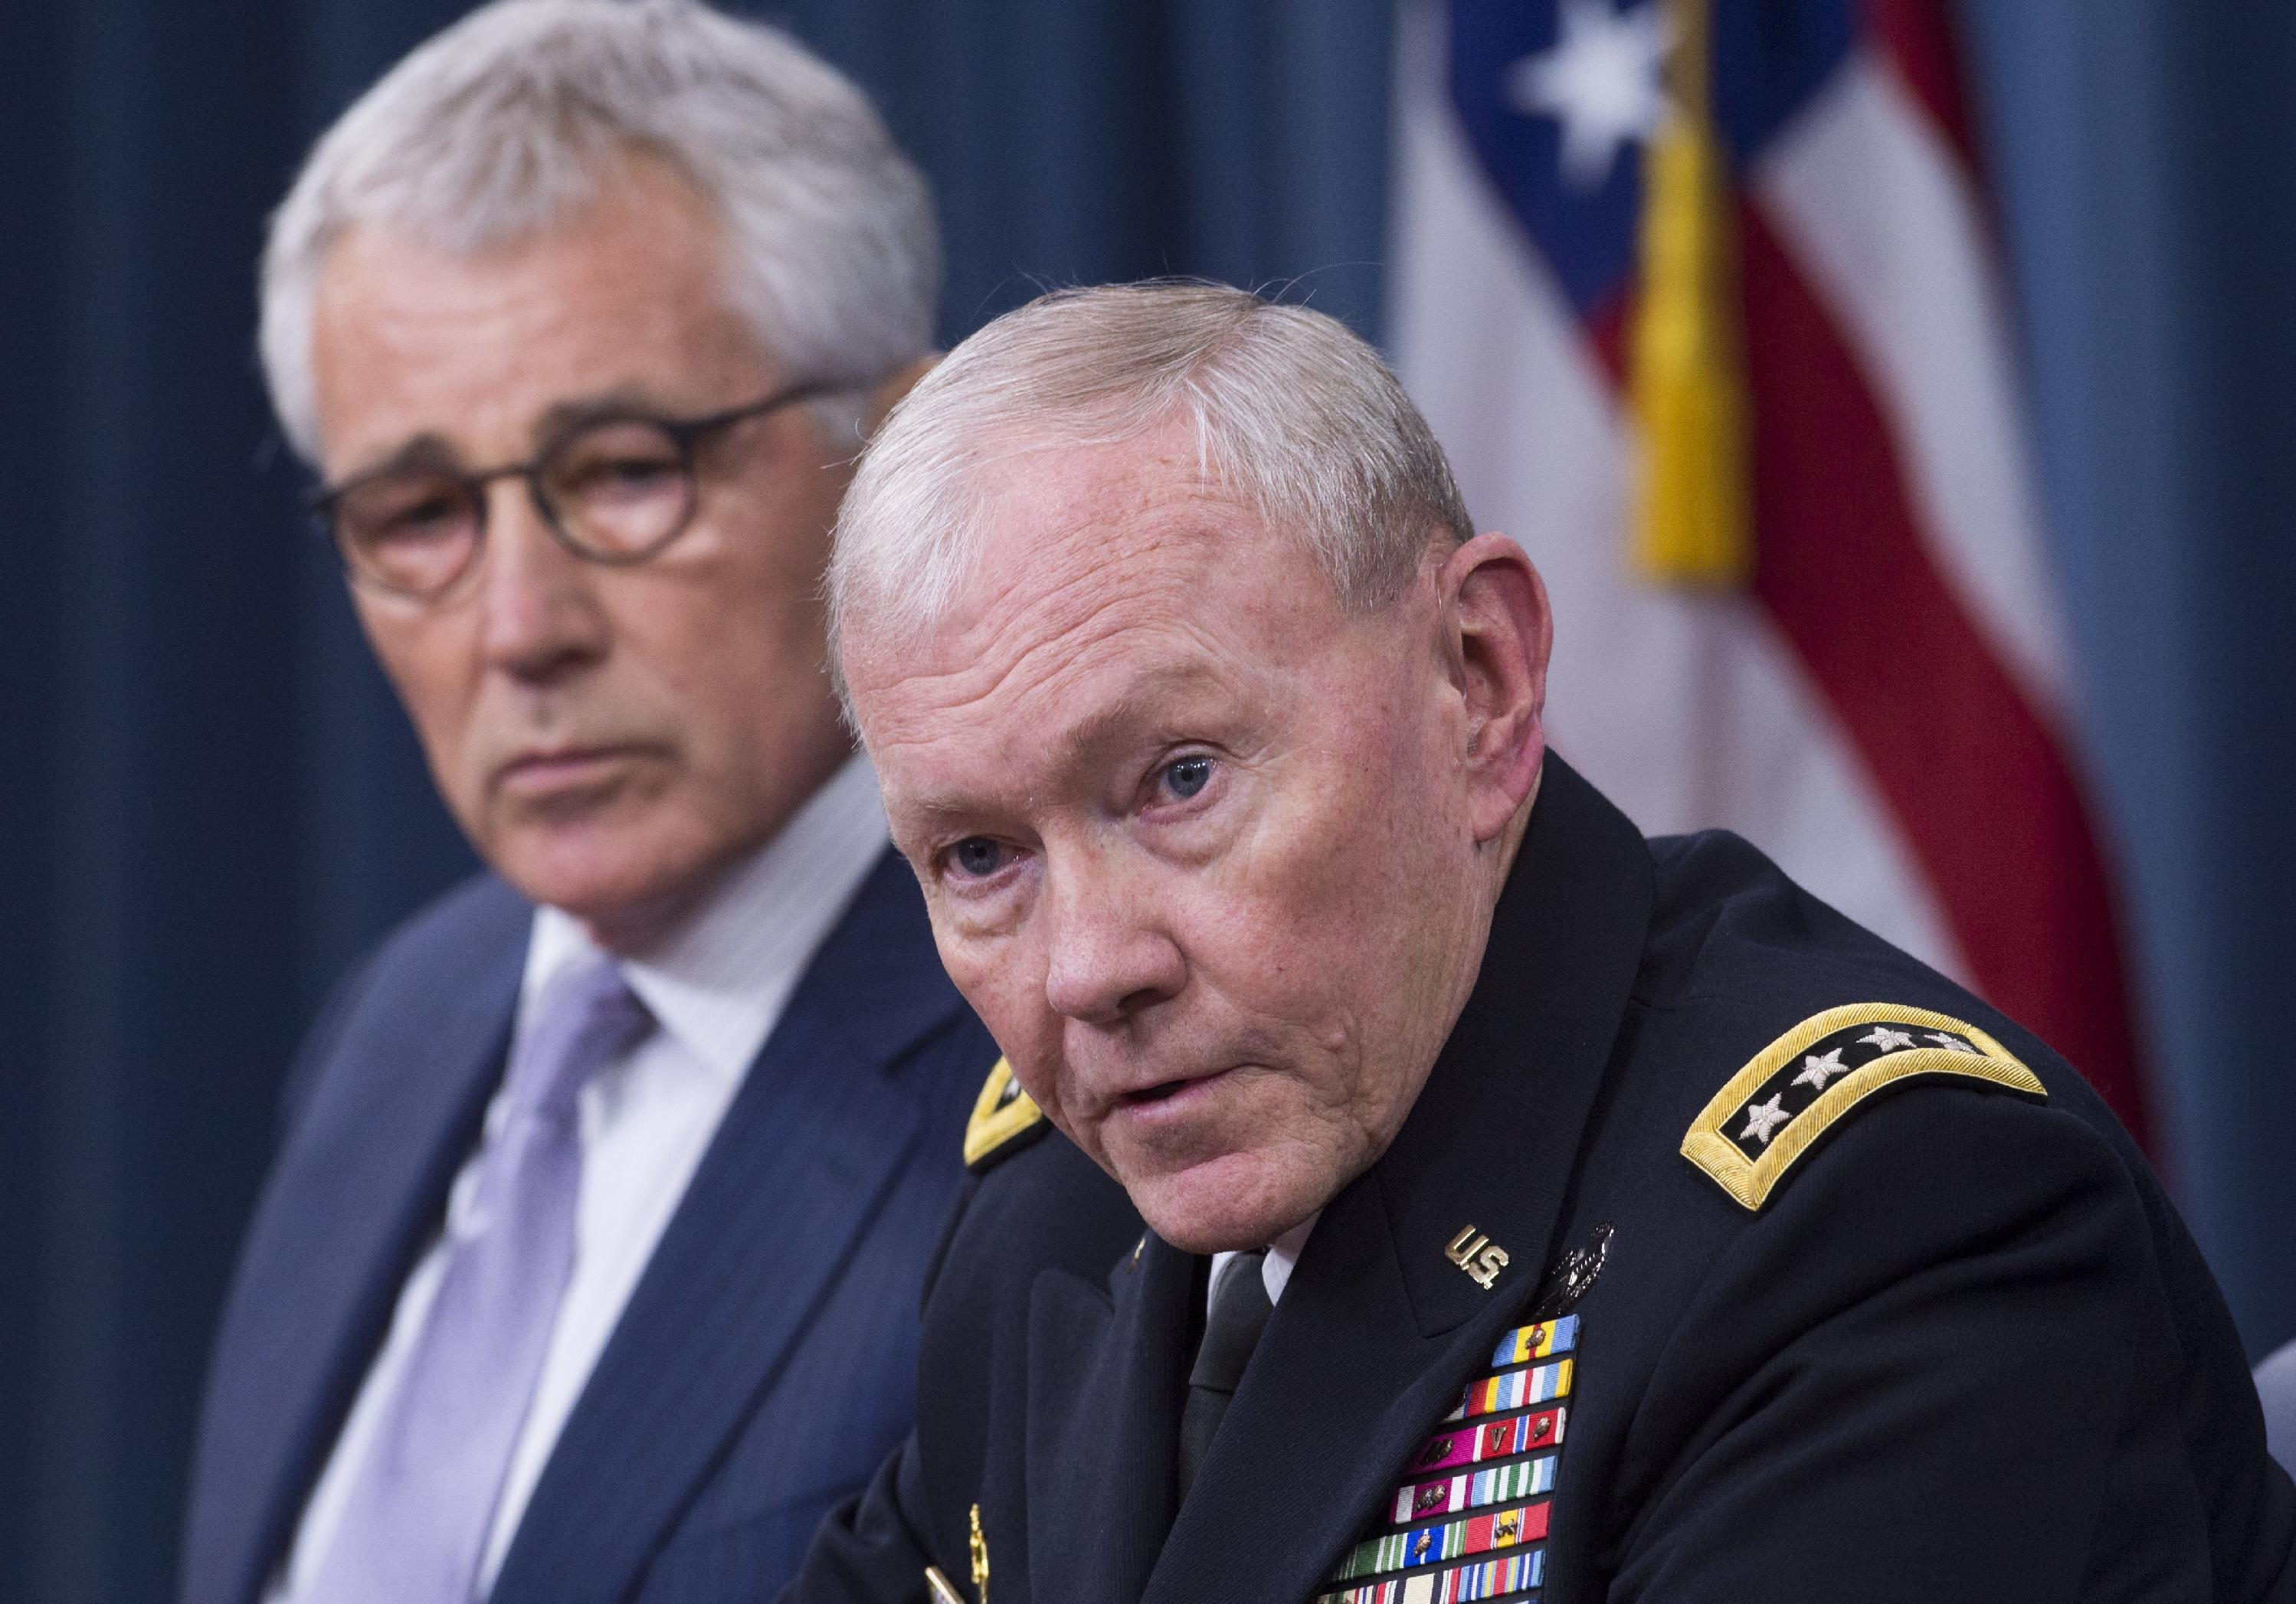 US Secretary of Defense Chuck Hagel (L) and Chairman of the Joint Chiefs of Staff General Martin Dempsey hold a press briefing at the Pentagon in Washington, DC, August 21, 2014 (AFP Photo/Saul Loeb)